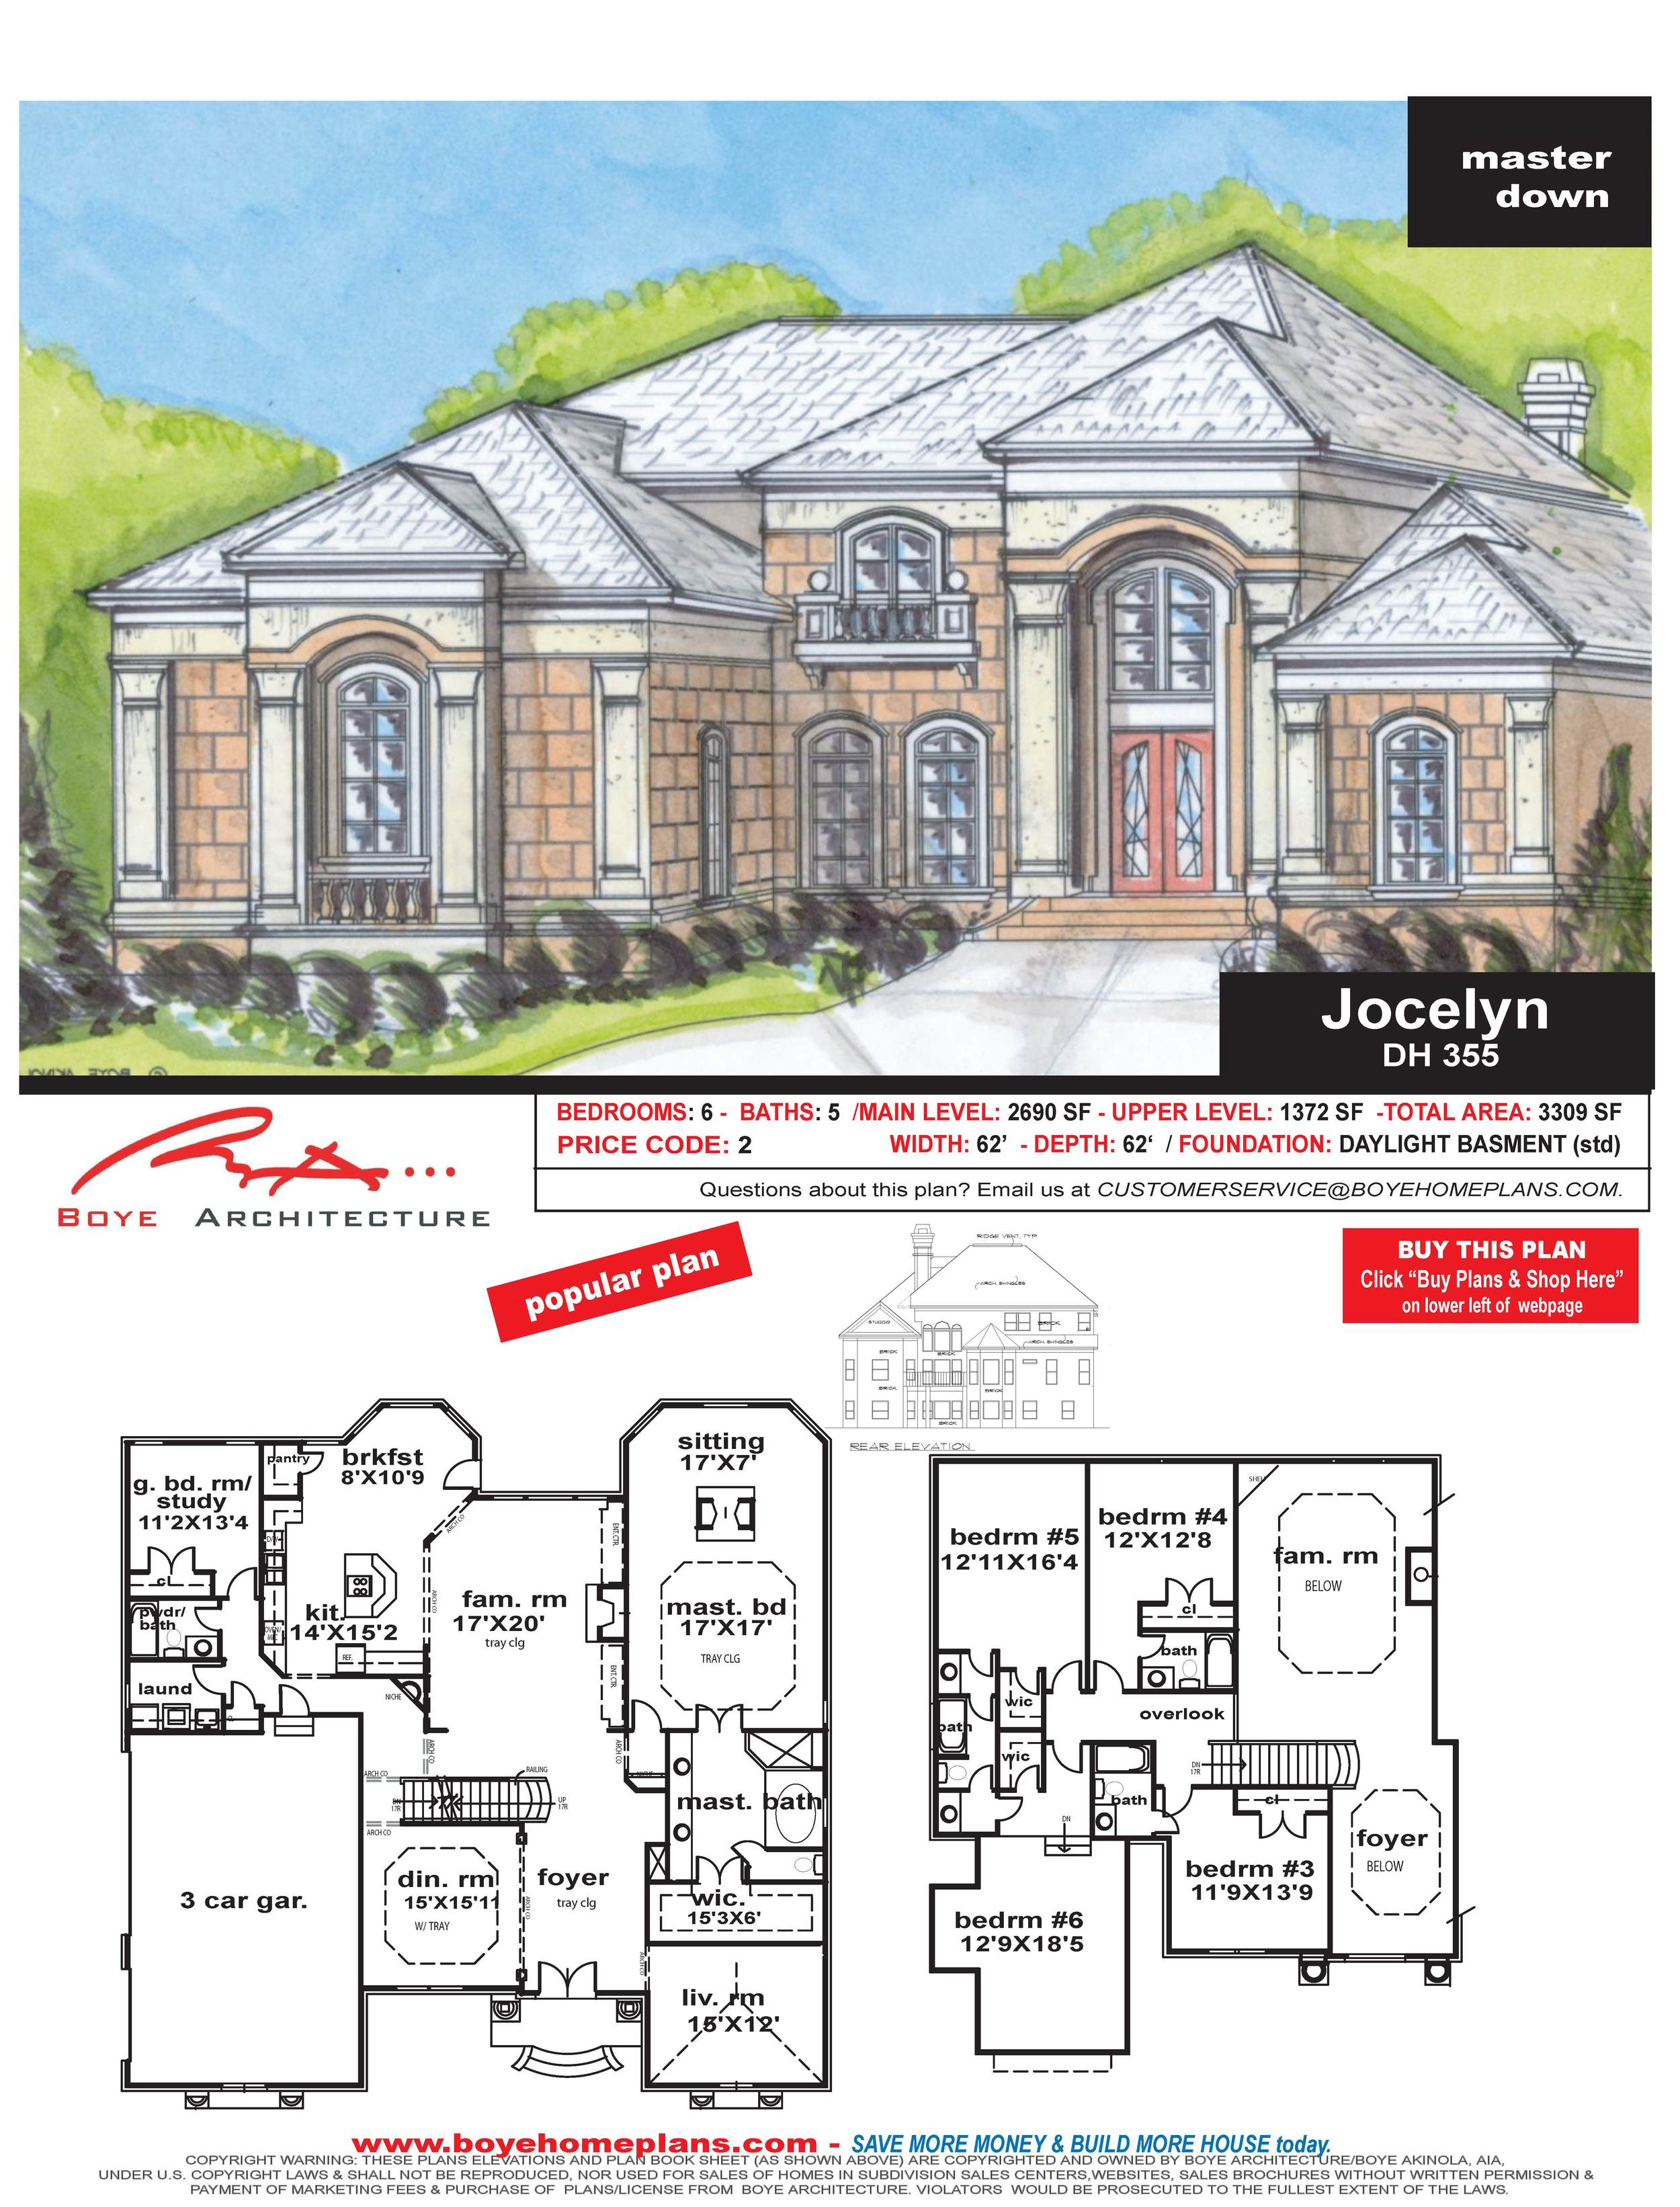 JOCELYN PLAN PAGE-DH 355-122809.jpg